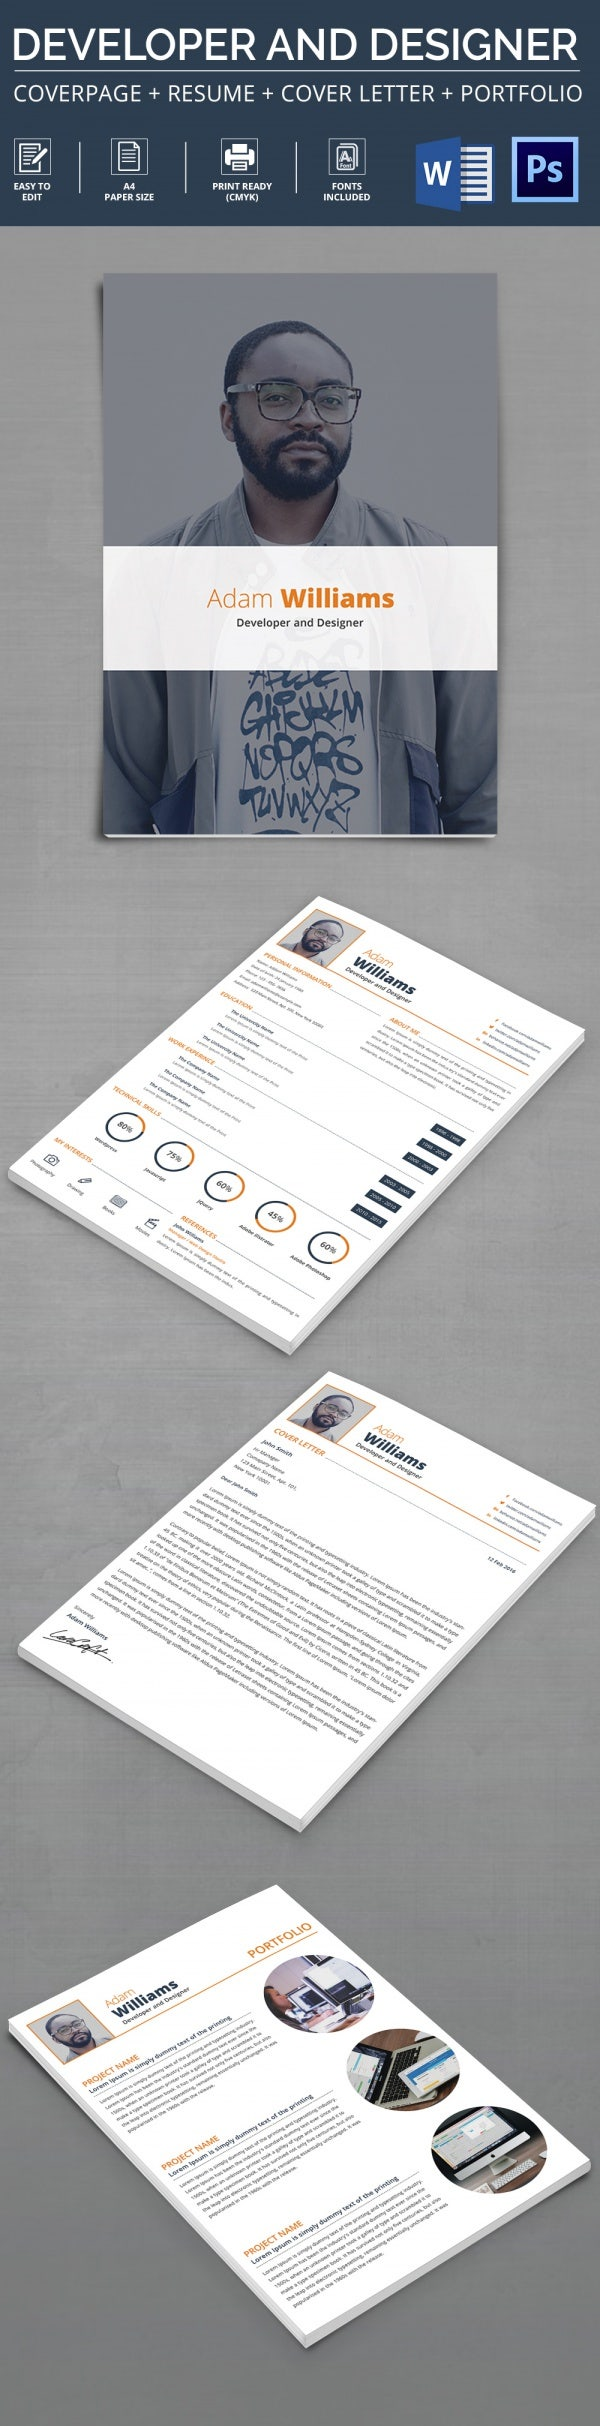 Developer and Designer Resume Template